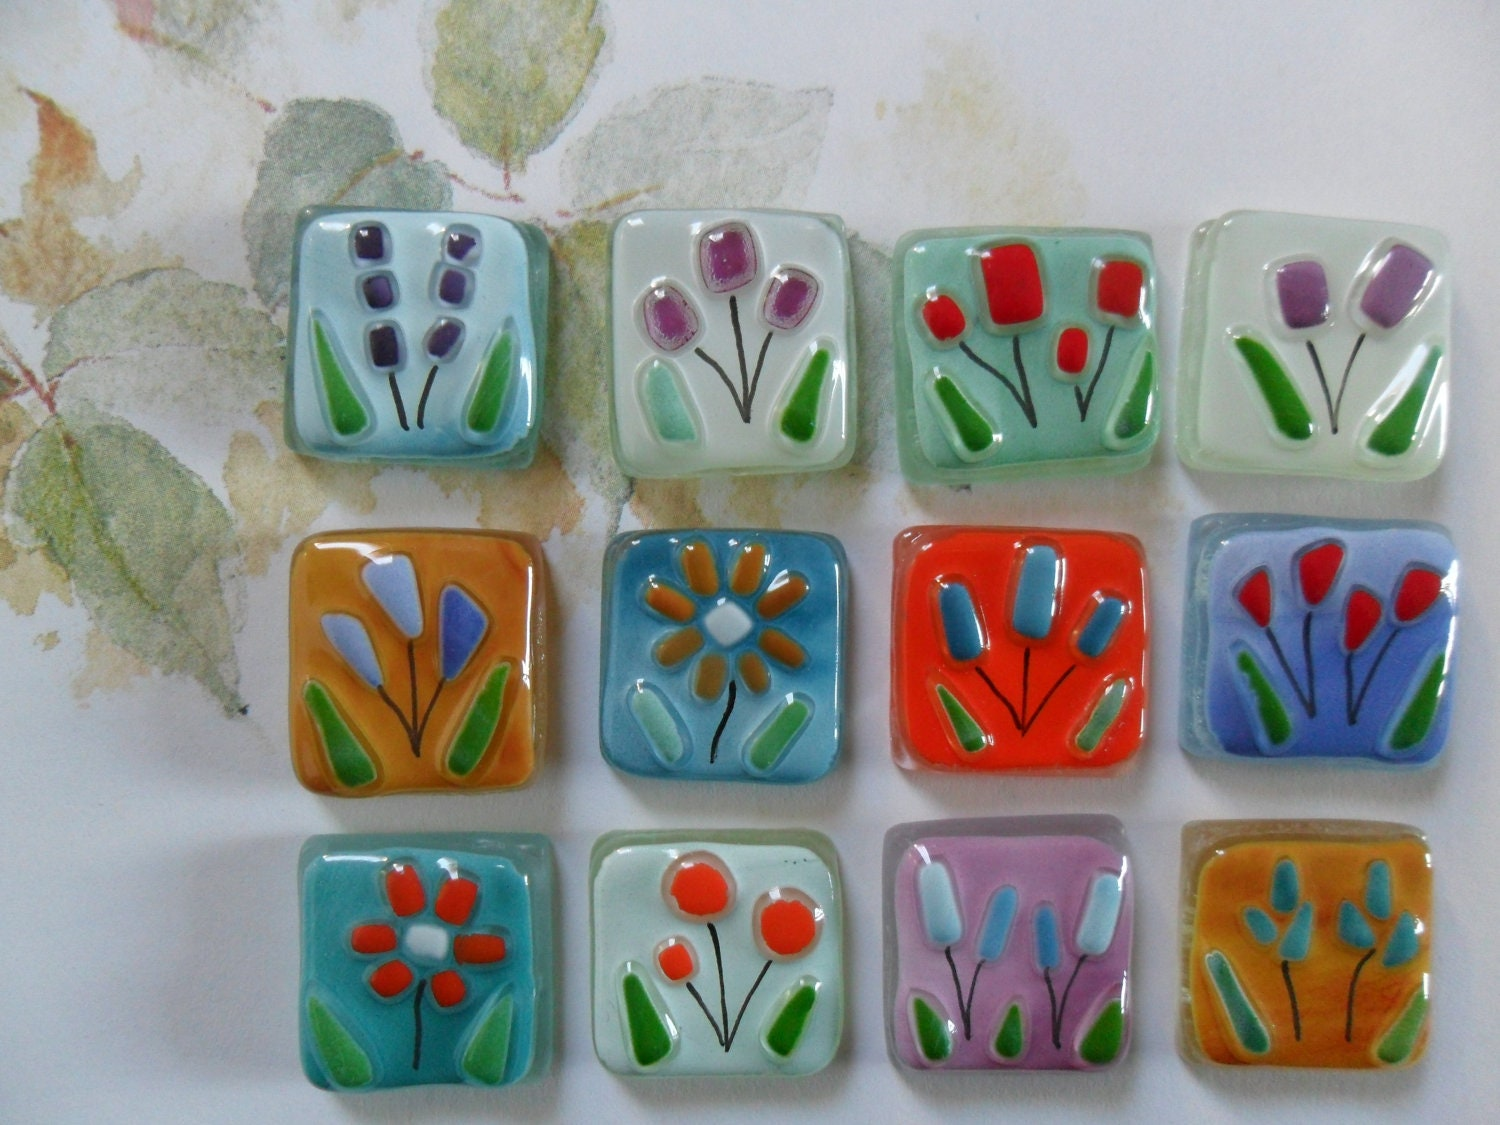 Fused glass tiles flowers floral handmade for mosaic art for Mosaic tiles for craft